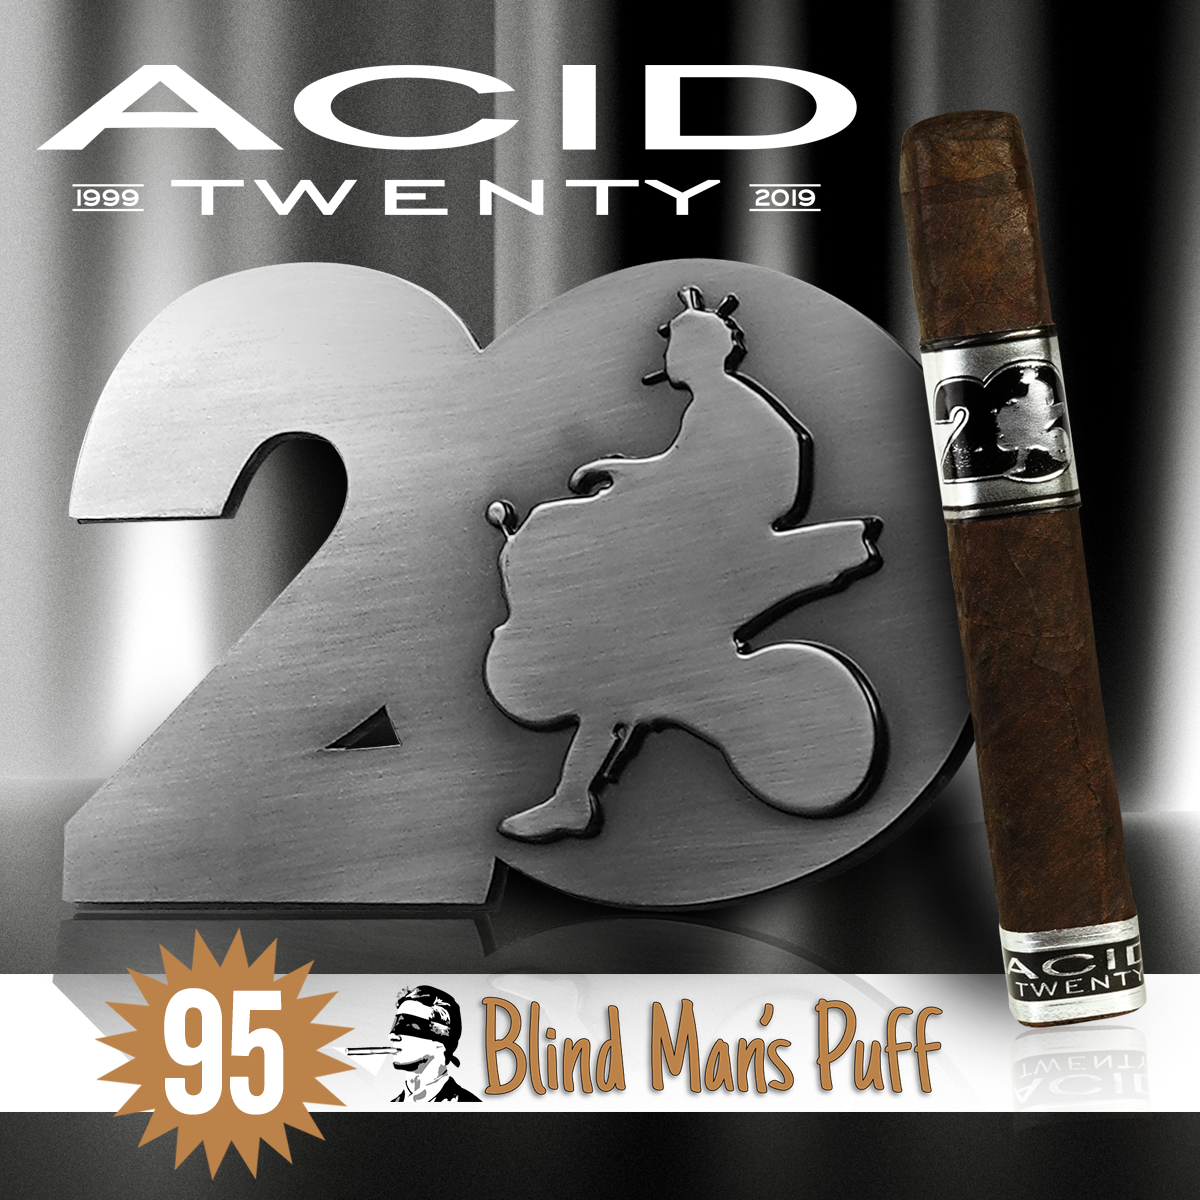 ACID 20 Earns an Ecstatic 95 Rating from Blind Man's Puff!